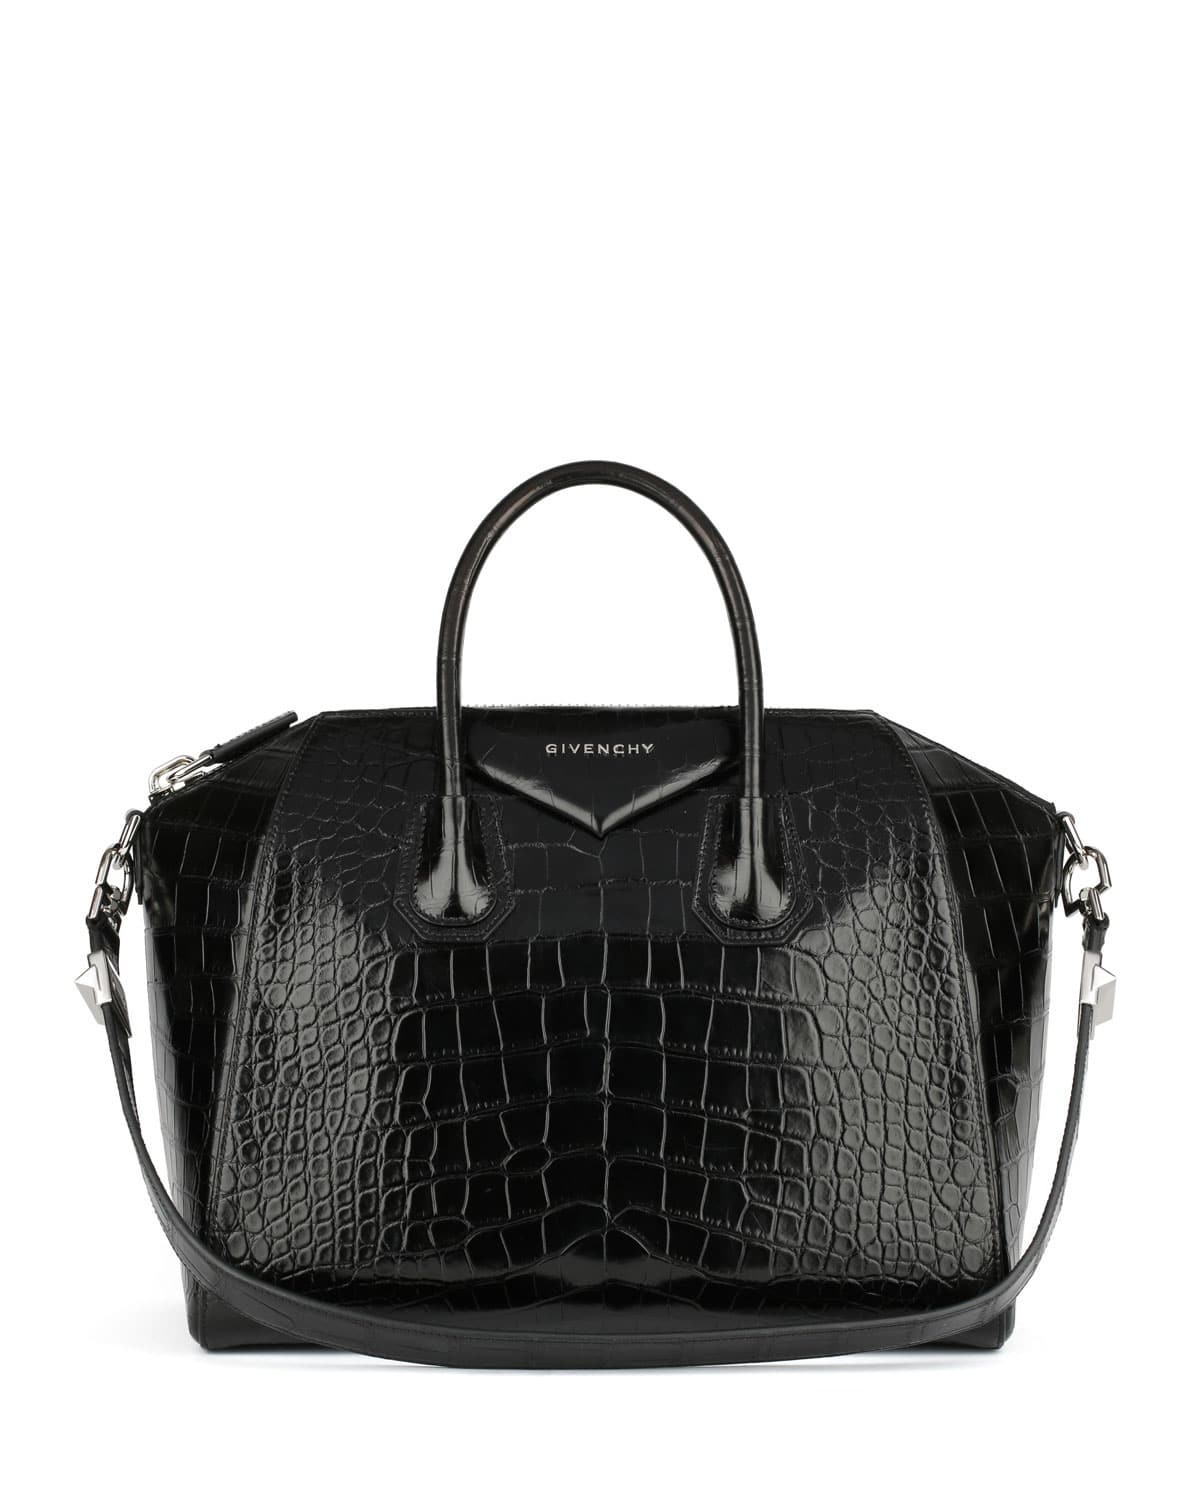 more givenchy pre fall 2014 bags including more mini antigona styles spotted fashion. Black Bedroom Furniture Sets. Home Design Ideas